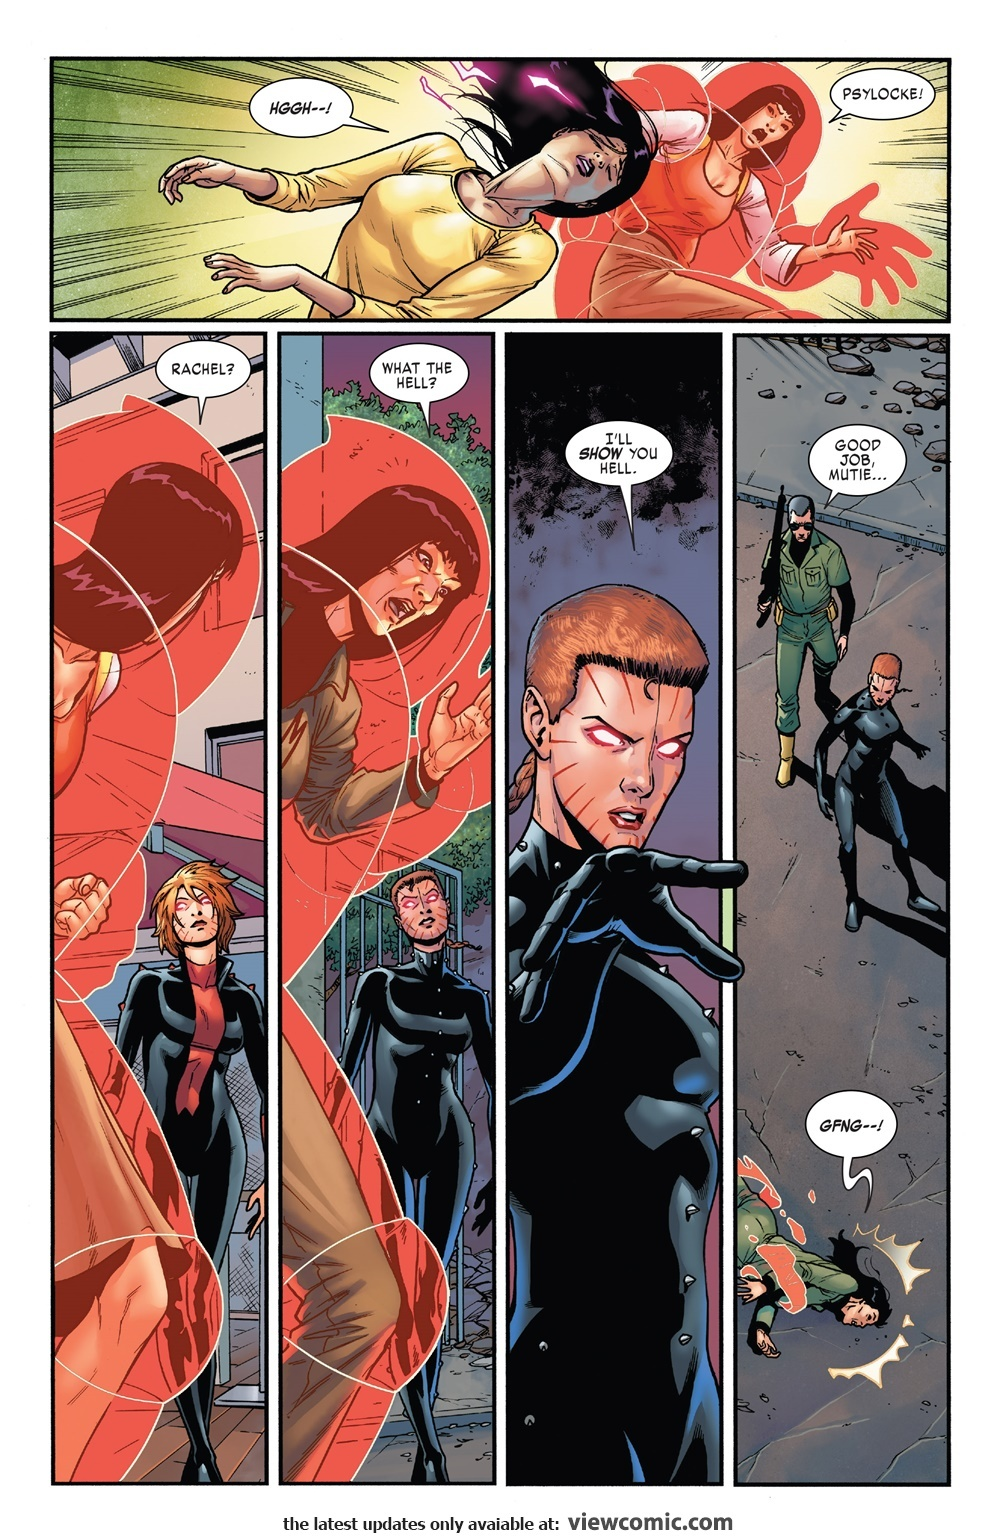 Able to down Psylocke in a single blast shortly after downing Storm - X-Men Gold #32